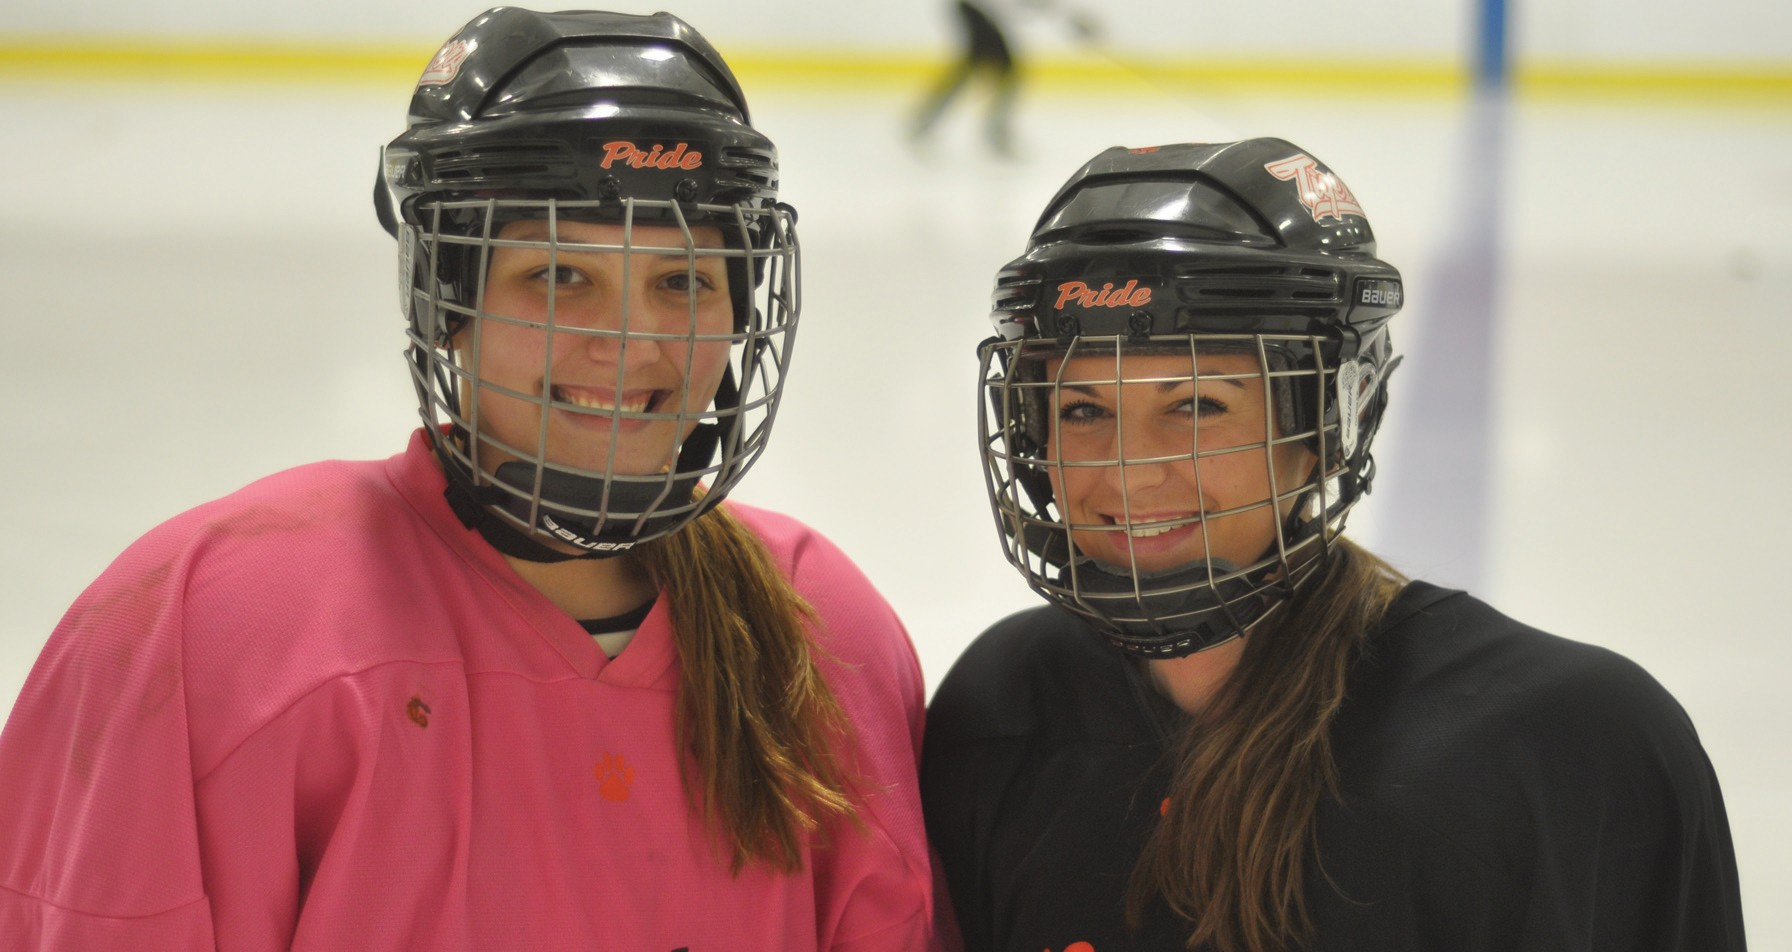 Biddeford captains Suzette Lamoureux (left) and Taylor Turgeon during warmups Monday in Biddeford.